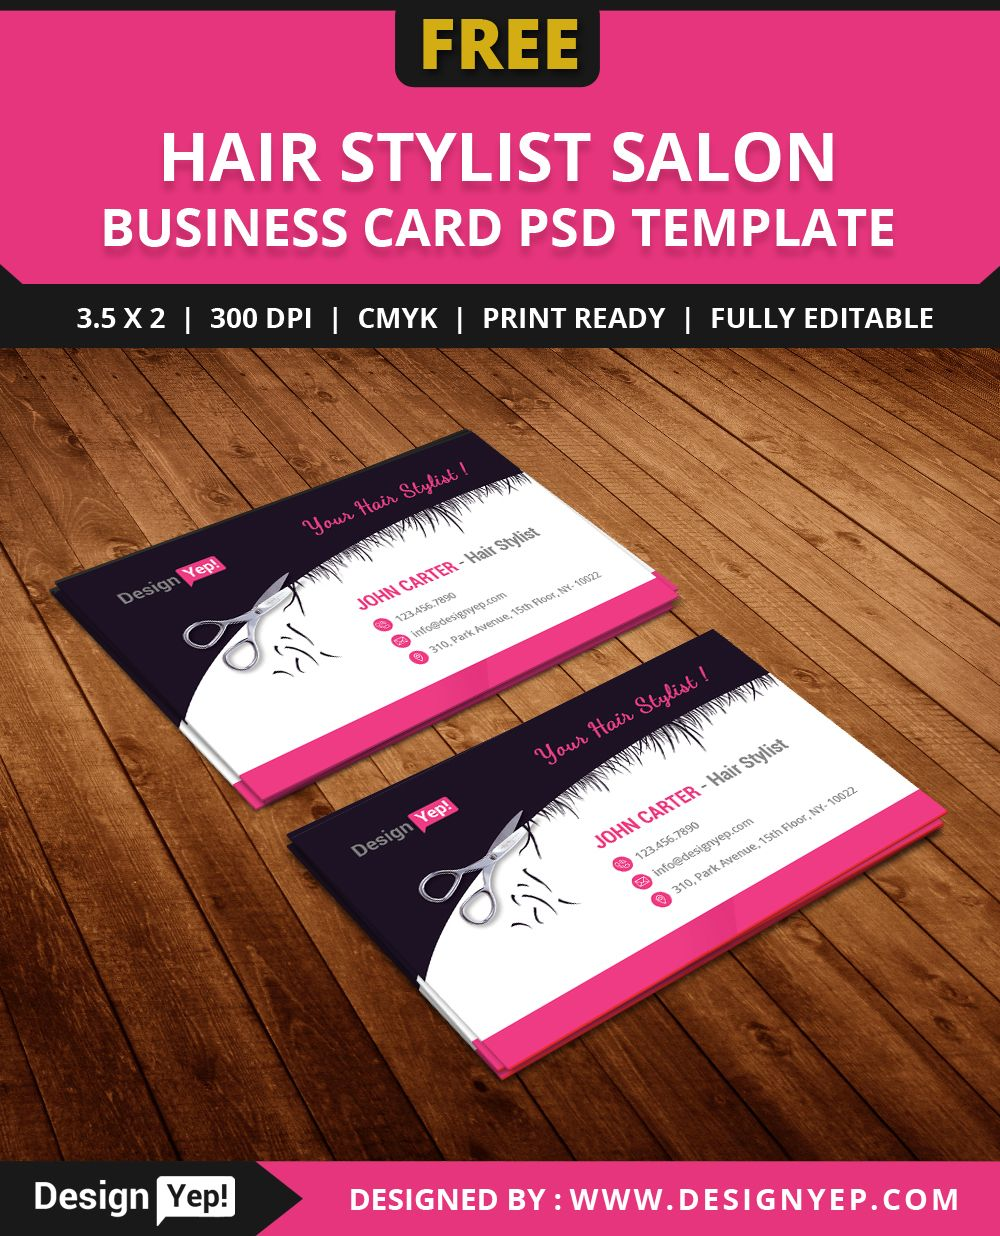 Free hair stylist salon business card template psd free business free hair stylist salon business card template psd friedricerecipe Images